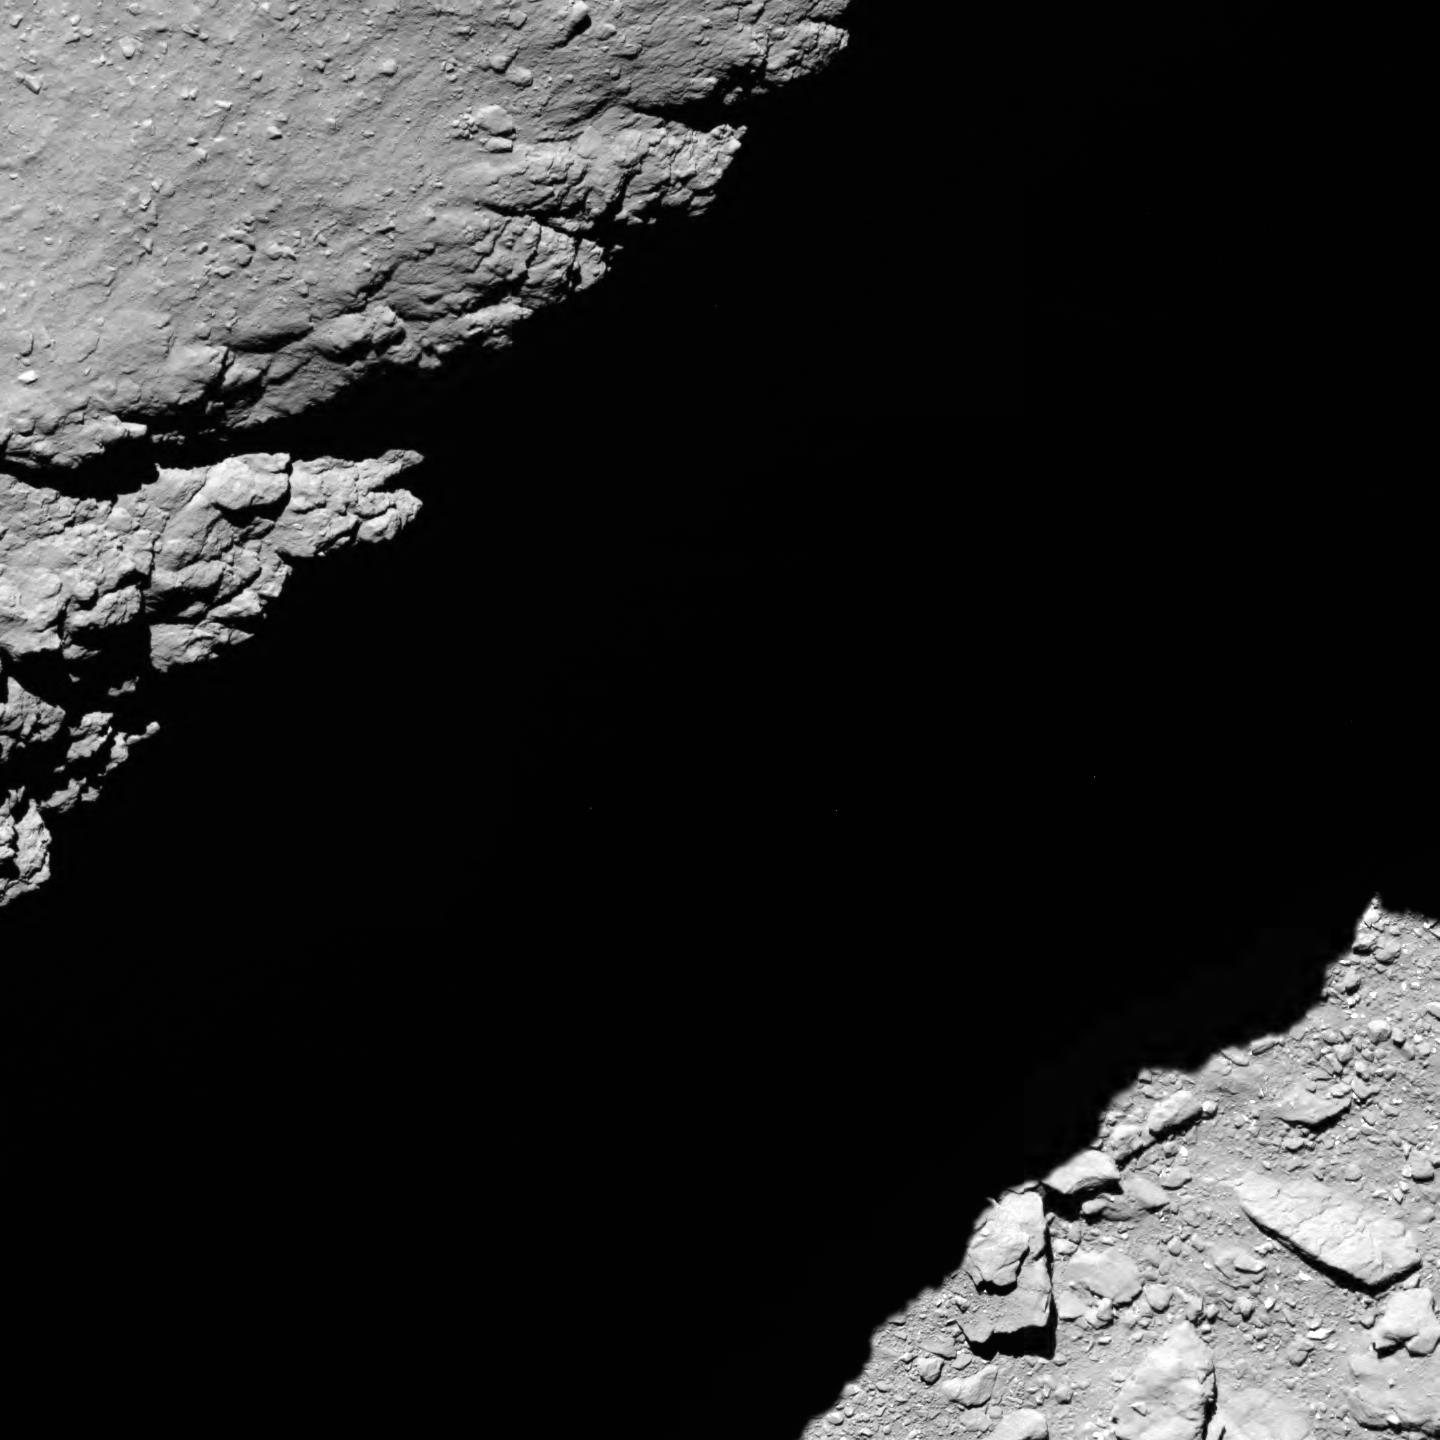 Incredible view 1.2 km from the comet's surface!